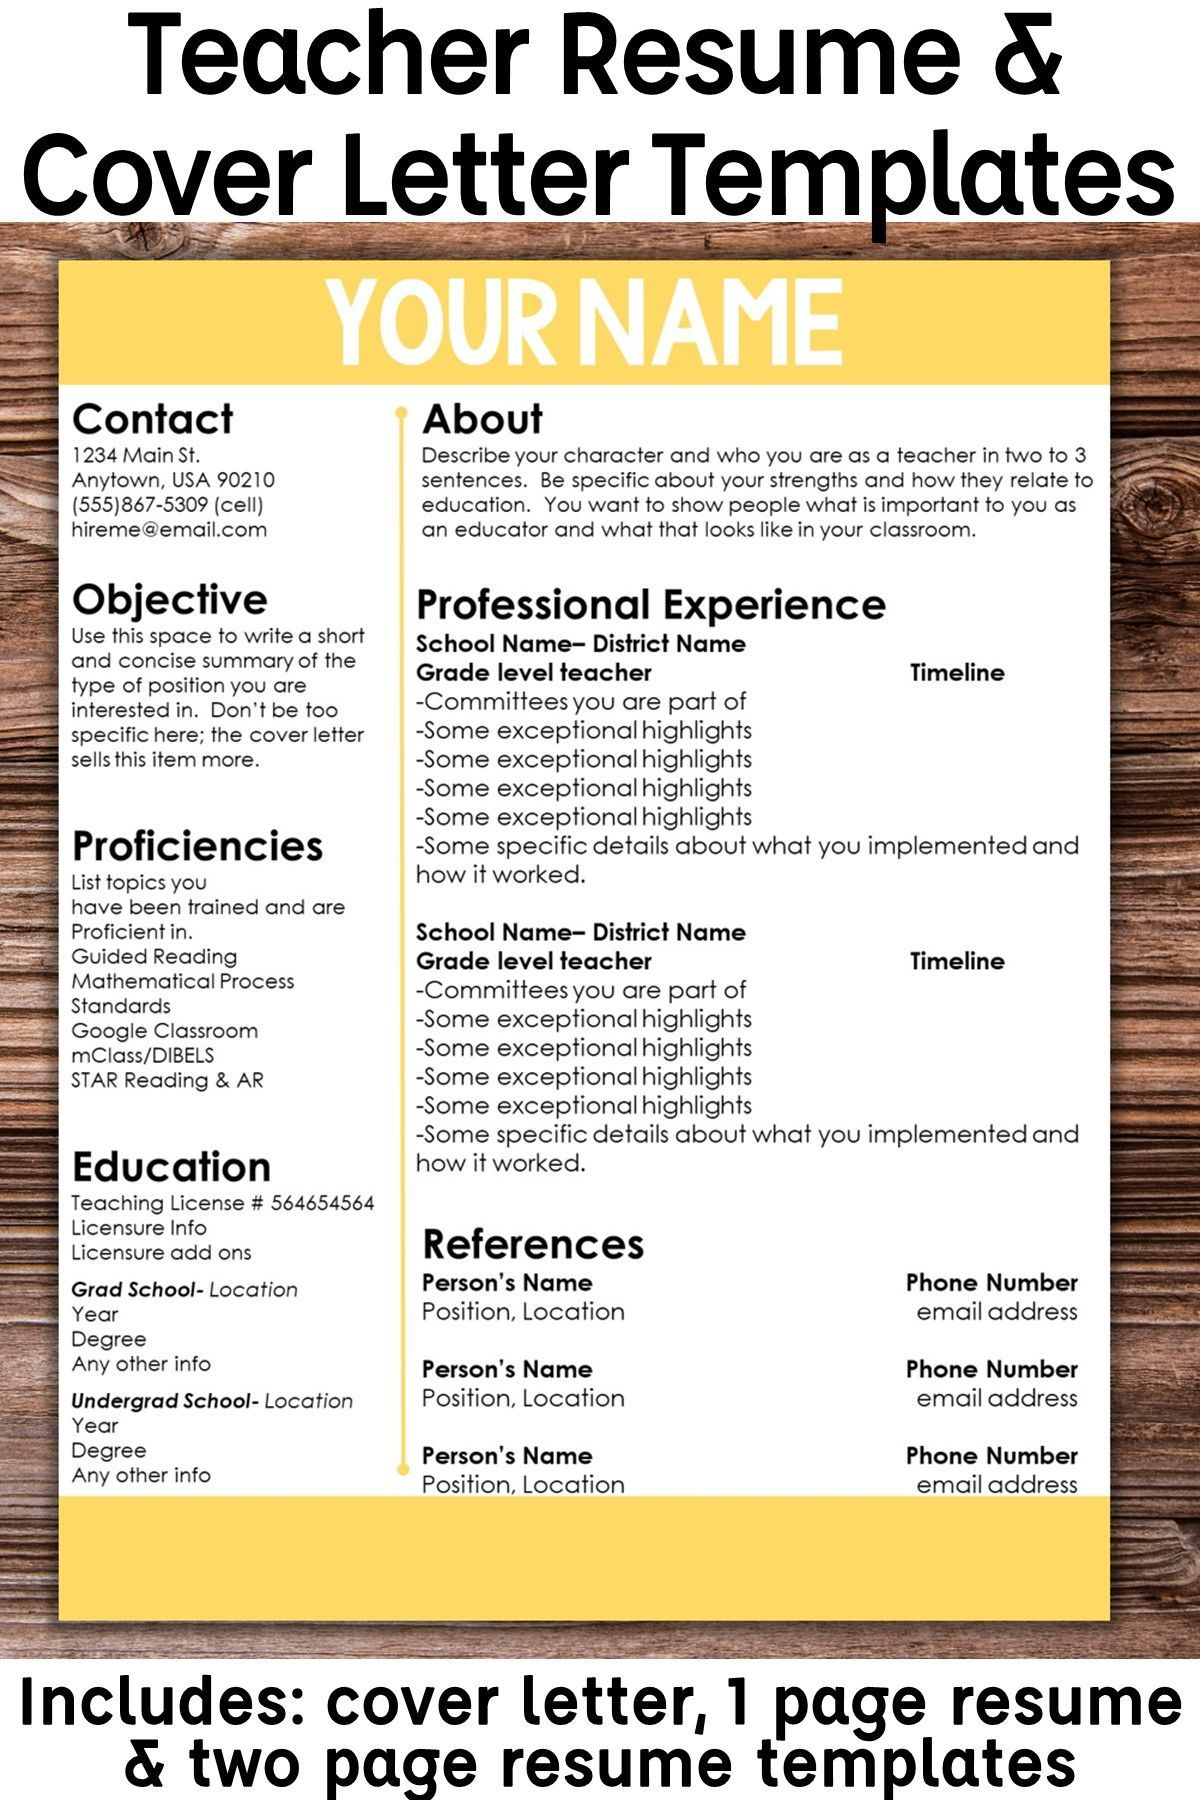 editable teacher resume template color accent cover letter customize for each position Resume Customize Resume For Each Position